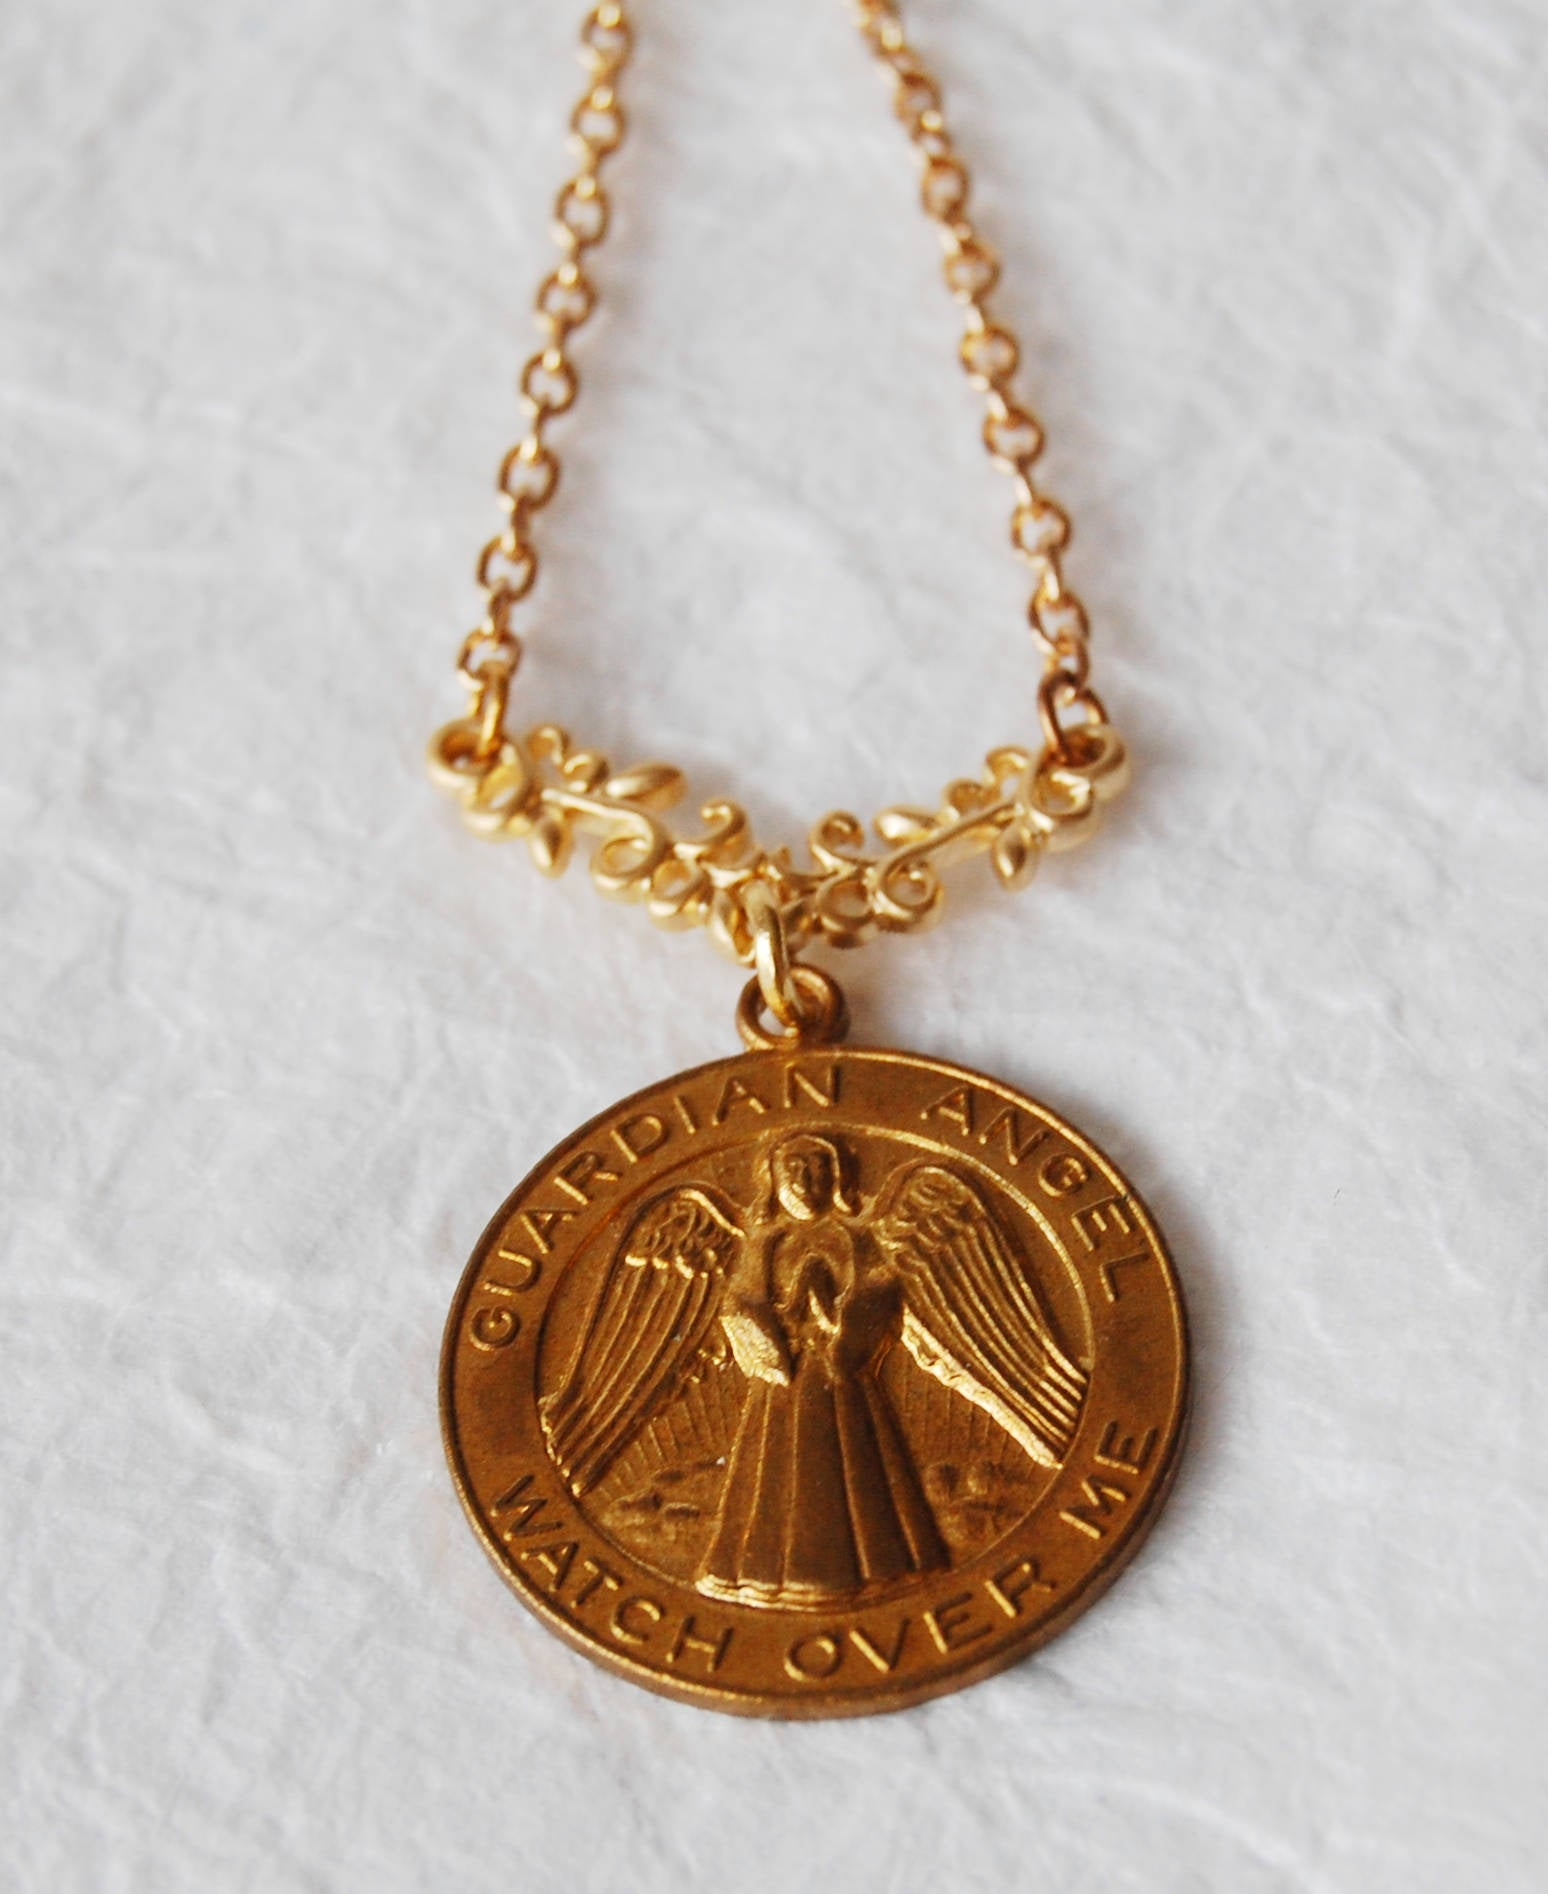 Solid Vintage Brass Guardian Angel Necklace, E041717 Guarded & Guided